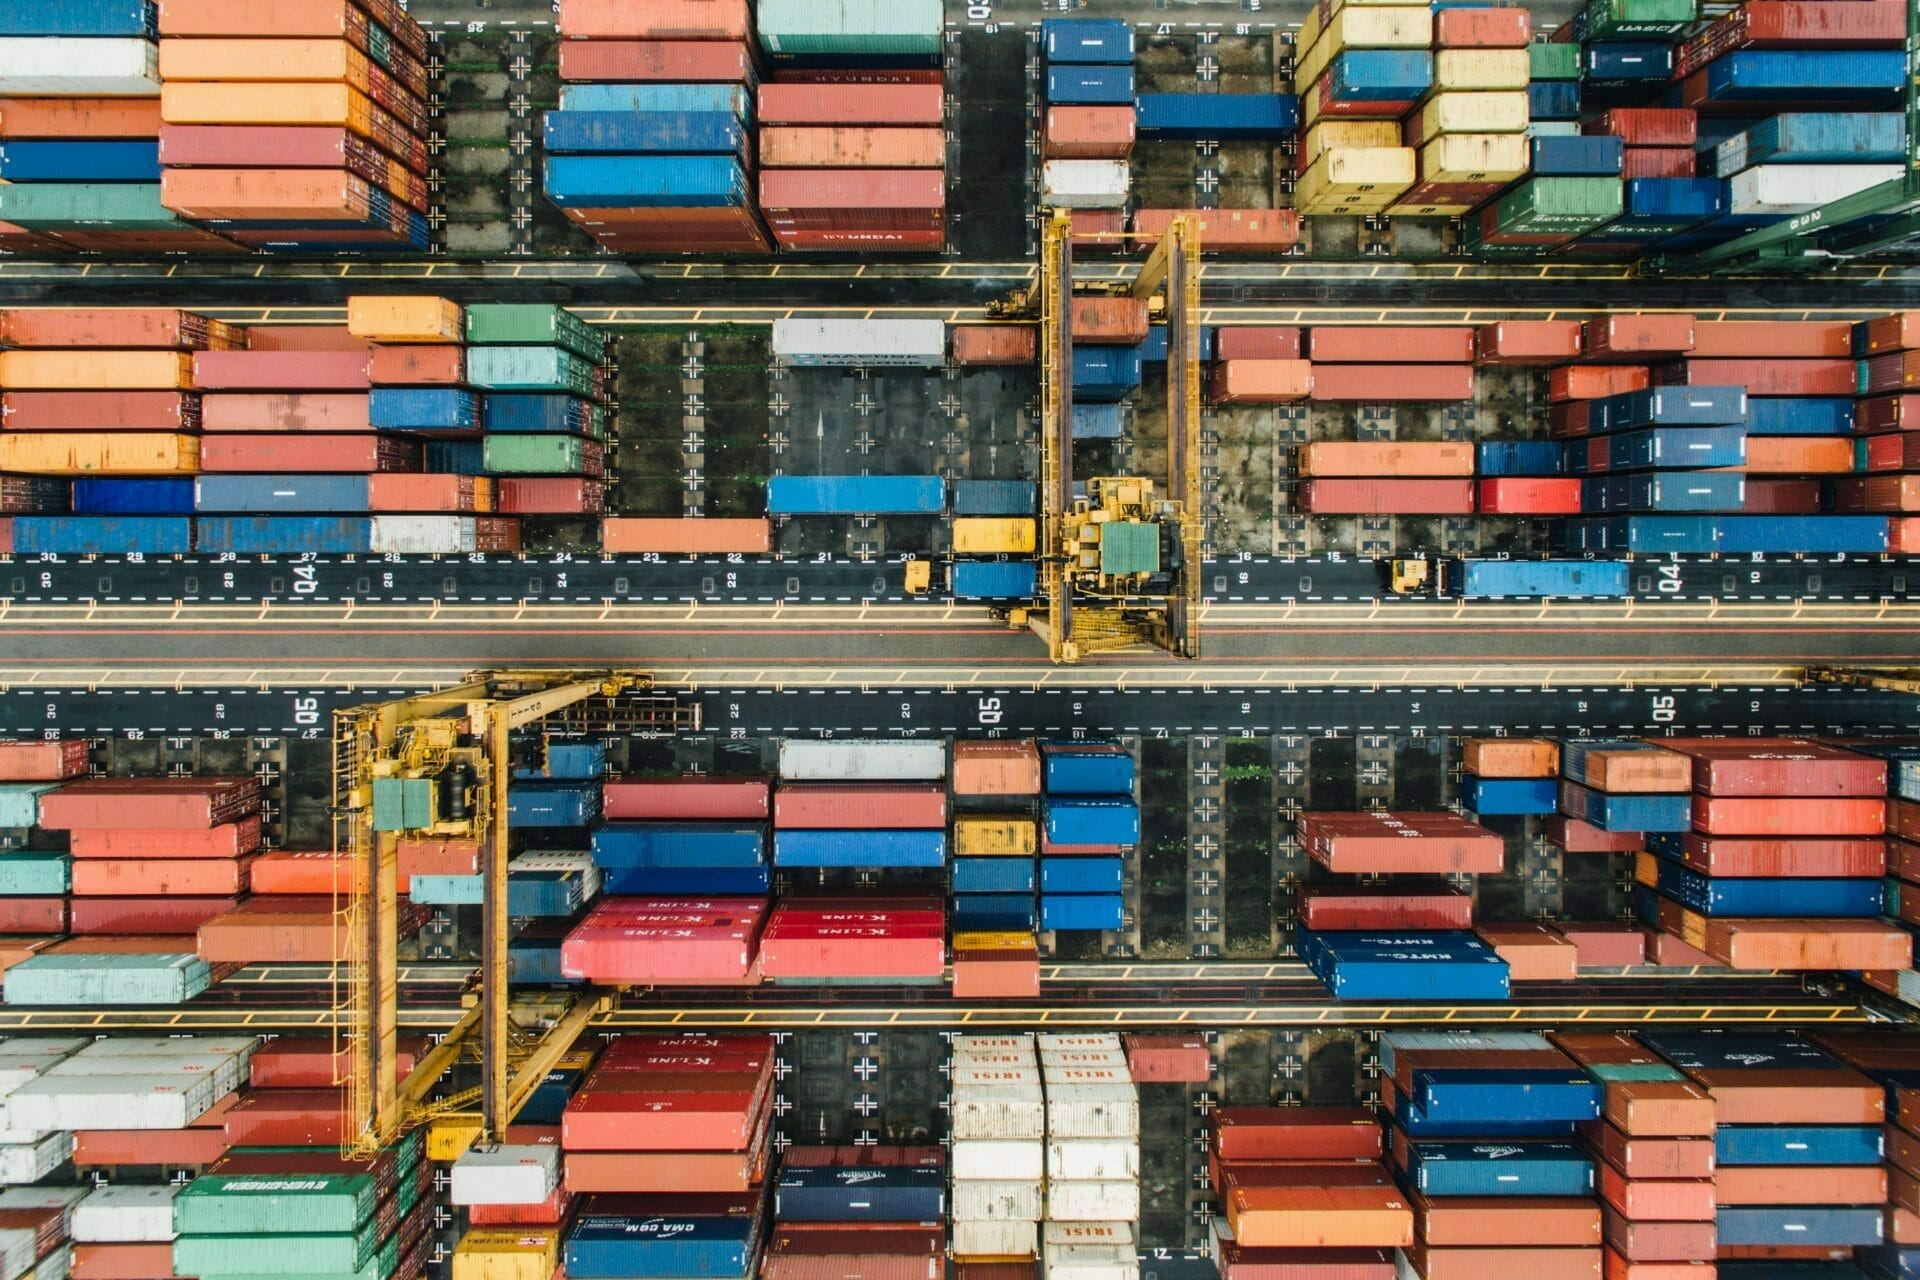 Stacks of shipping containers for Real Estate News for Investors Podcast Episode #737